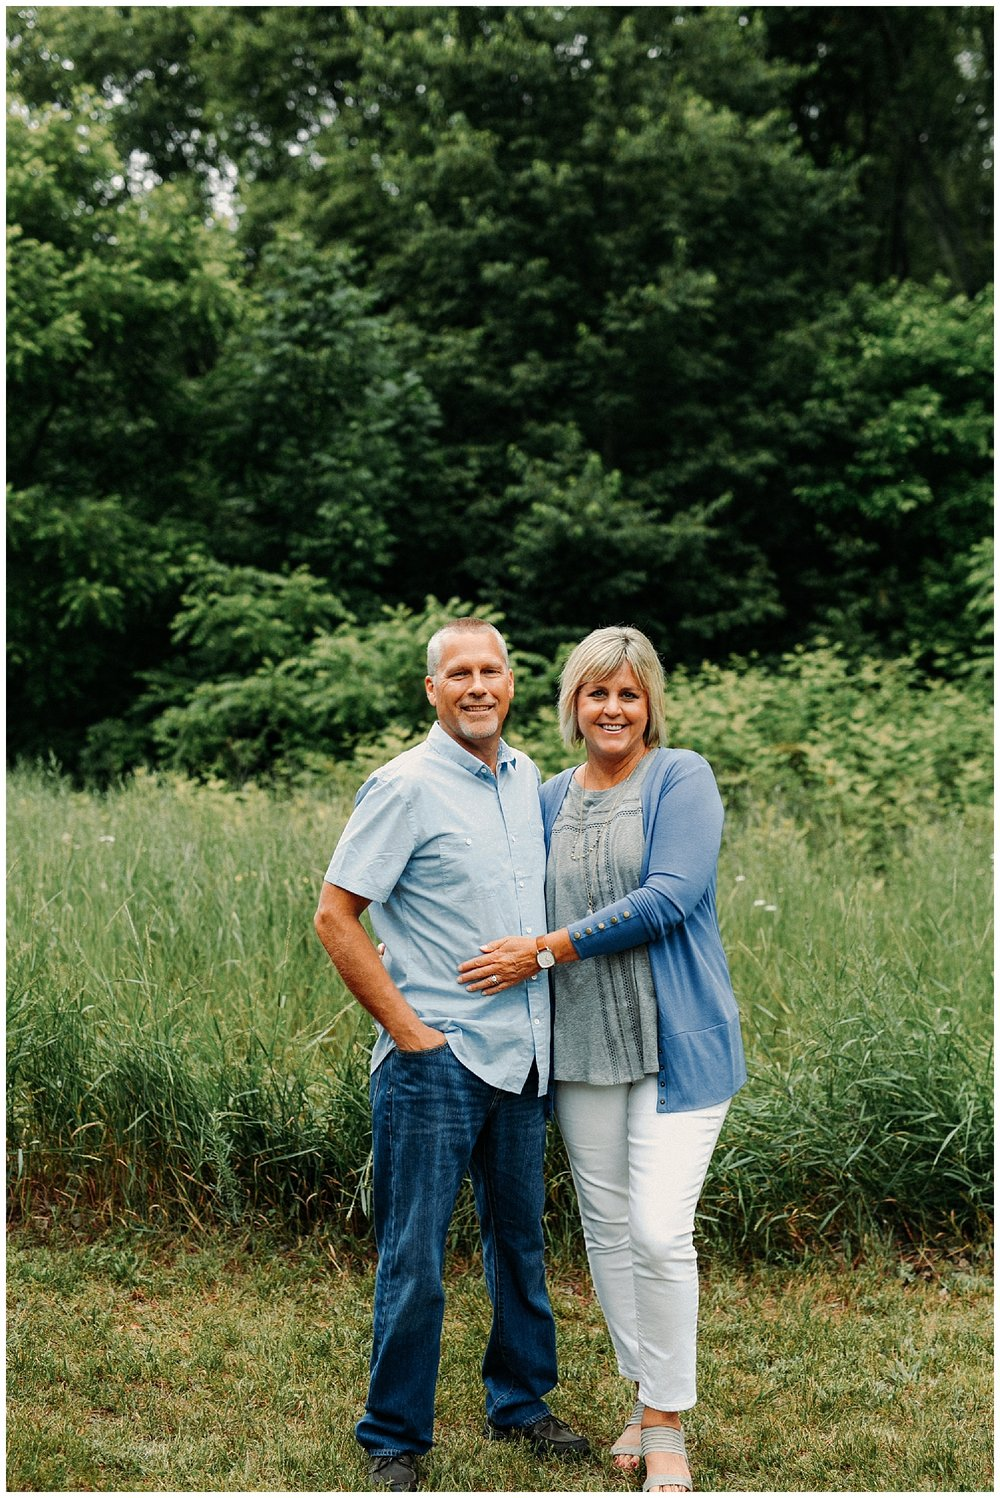 lindybeth photography - family pictures-80.jpg